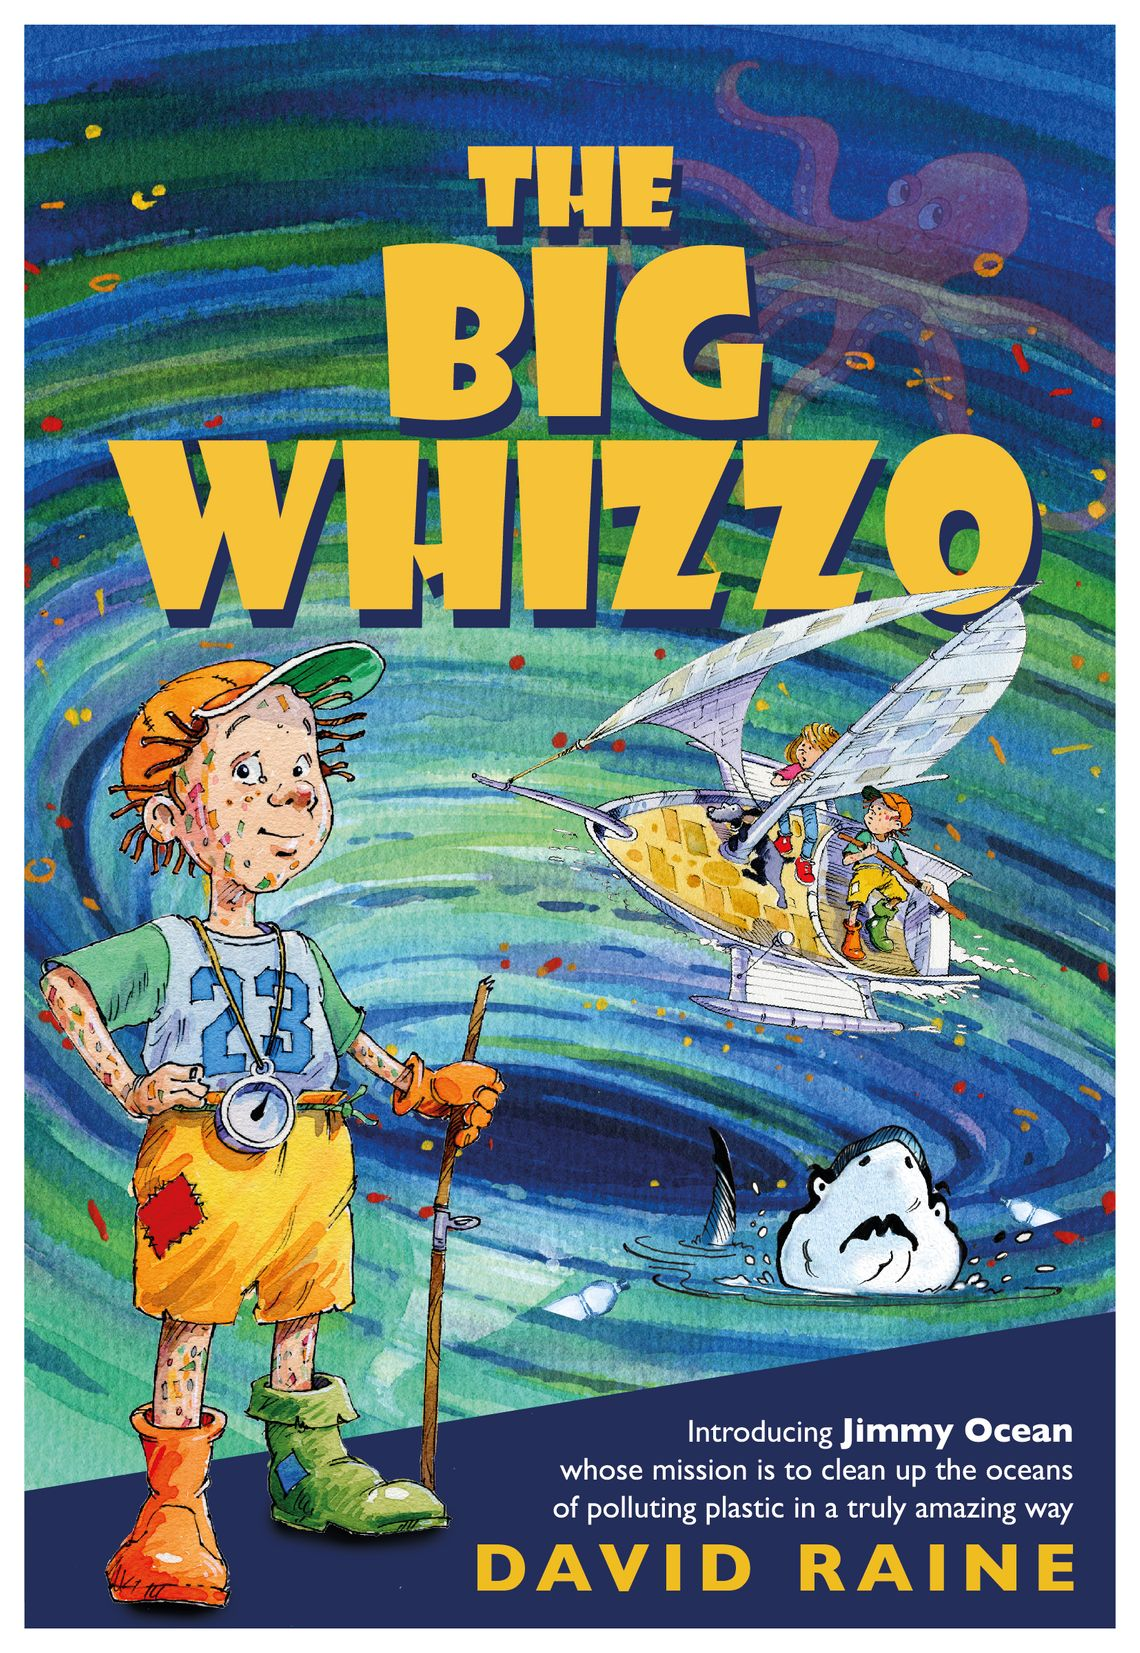 Behind 'The Big Whizzo' and The Jimmy Ocean Project